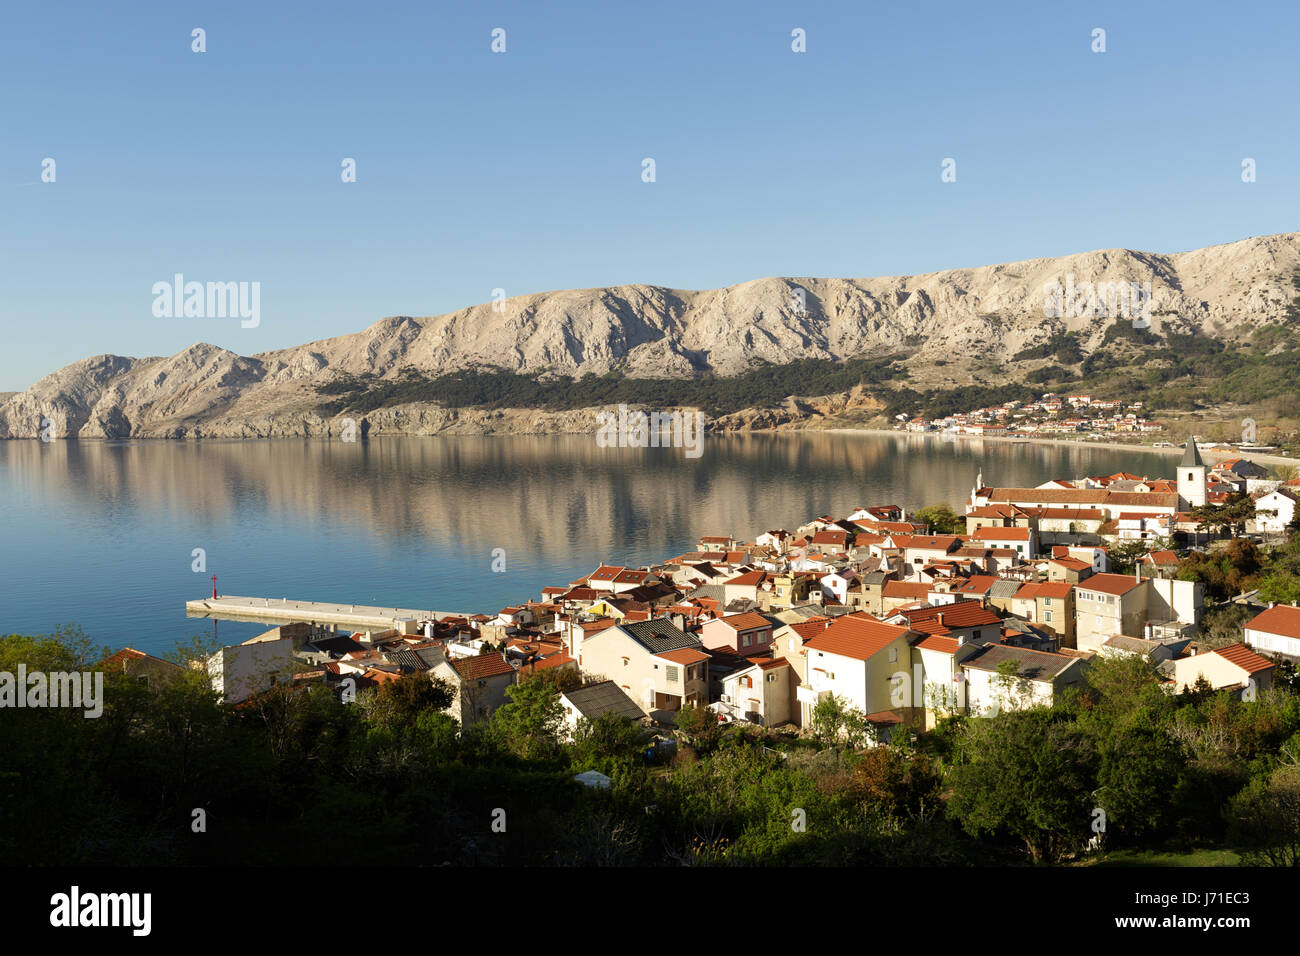 The town of Baska, island of Krk, Croatia. - Stock Image